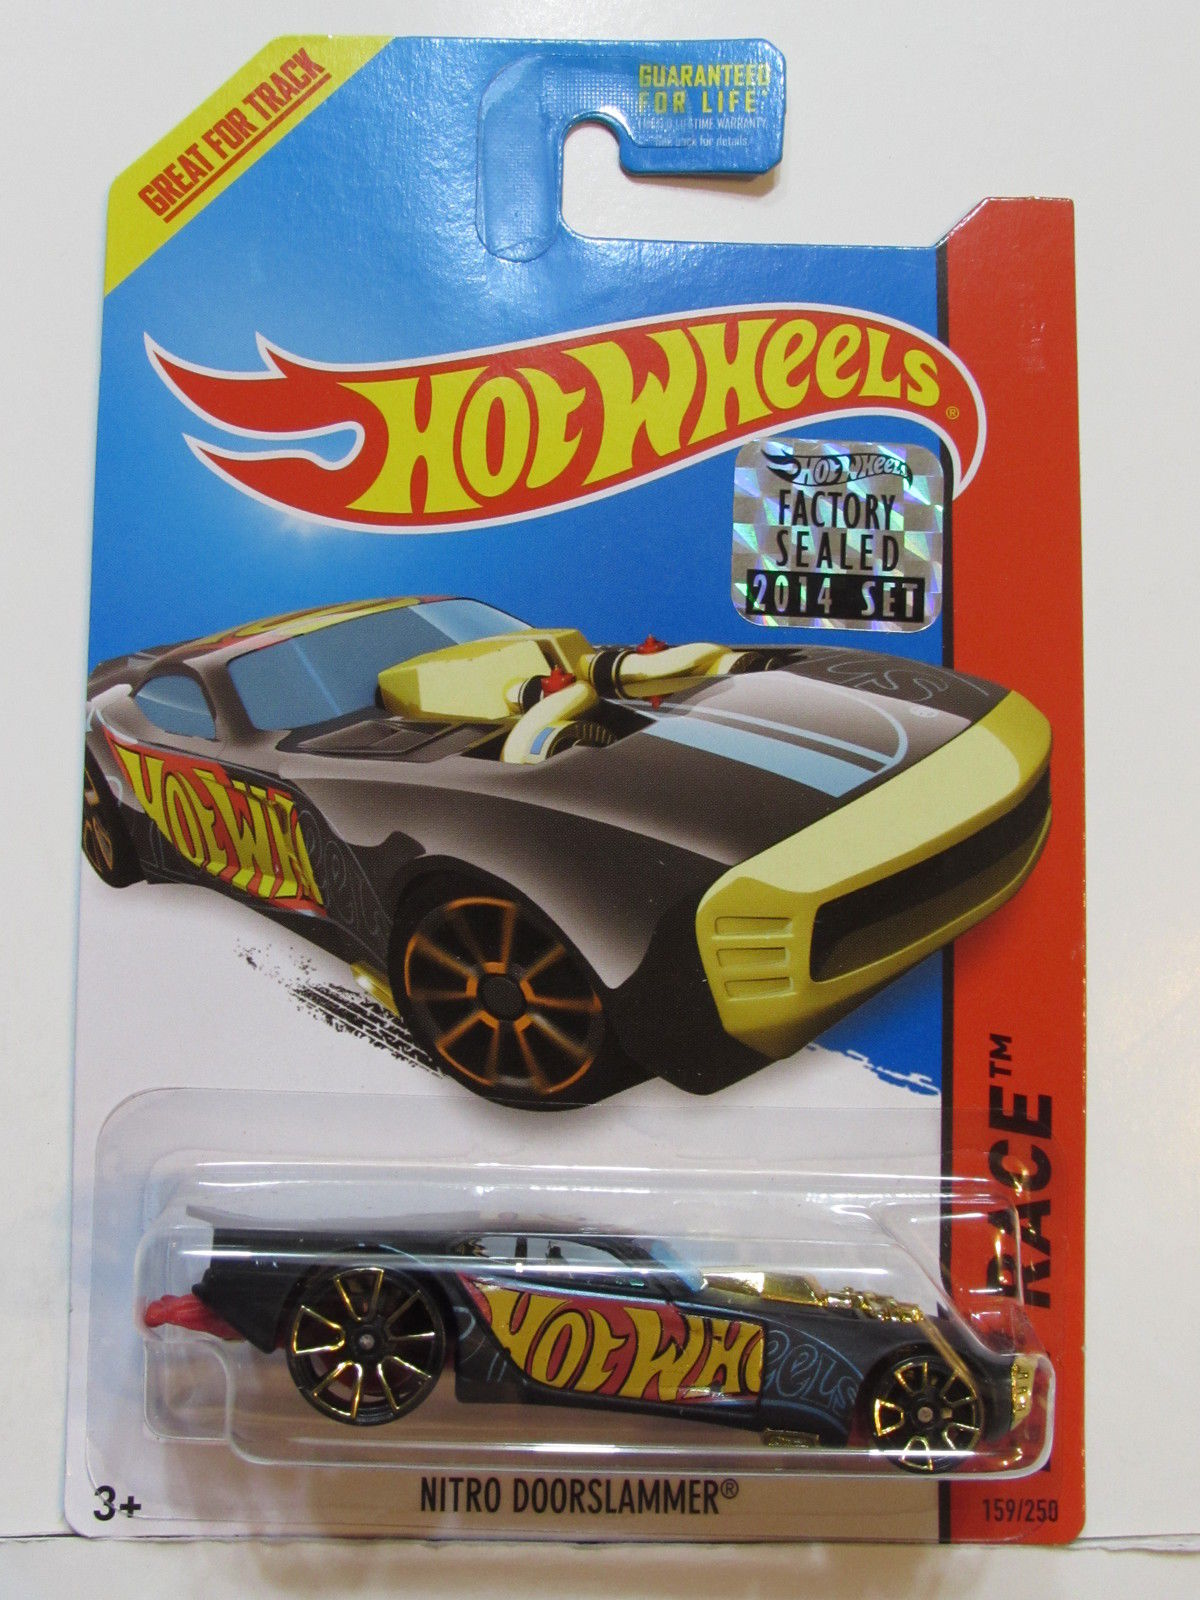 HOT WHEELS 2014 HW RACE NITRO DOORSLAMMER FACTORY SEALED BLACK